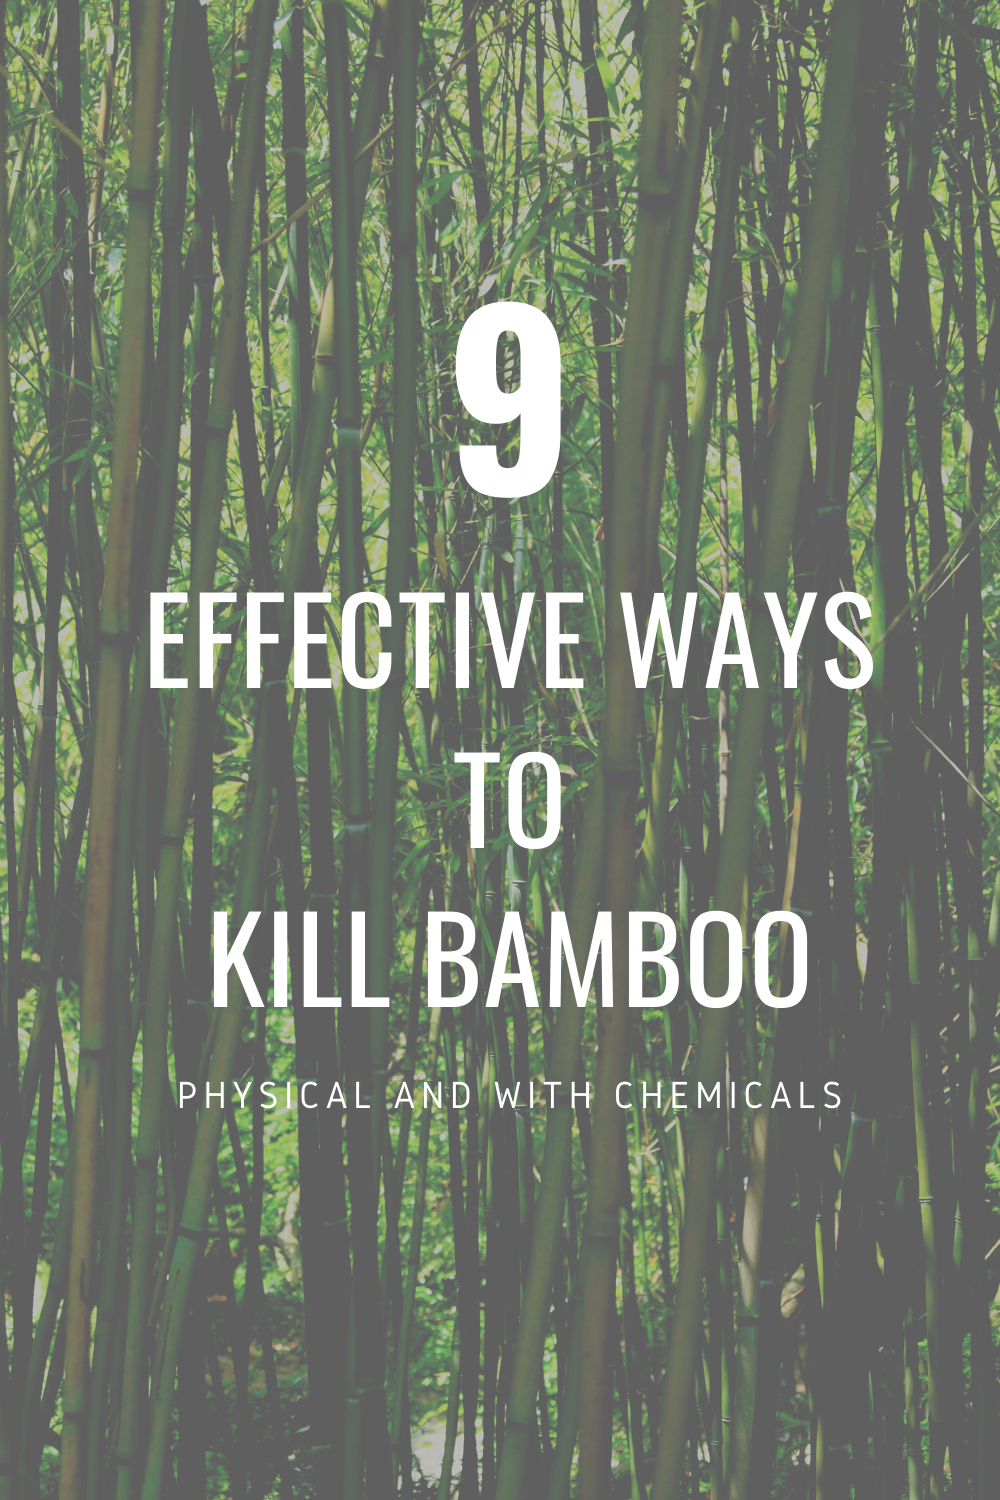 How to get rid of bamboo in 2020 | Bamboo landscape ...